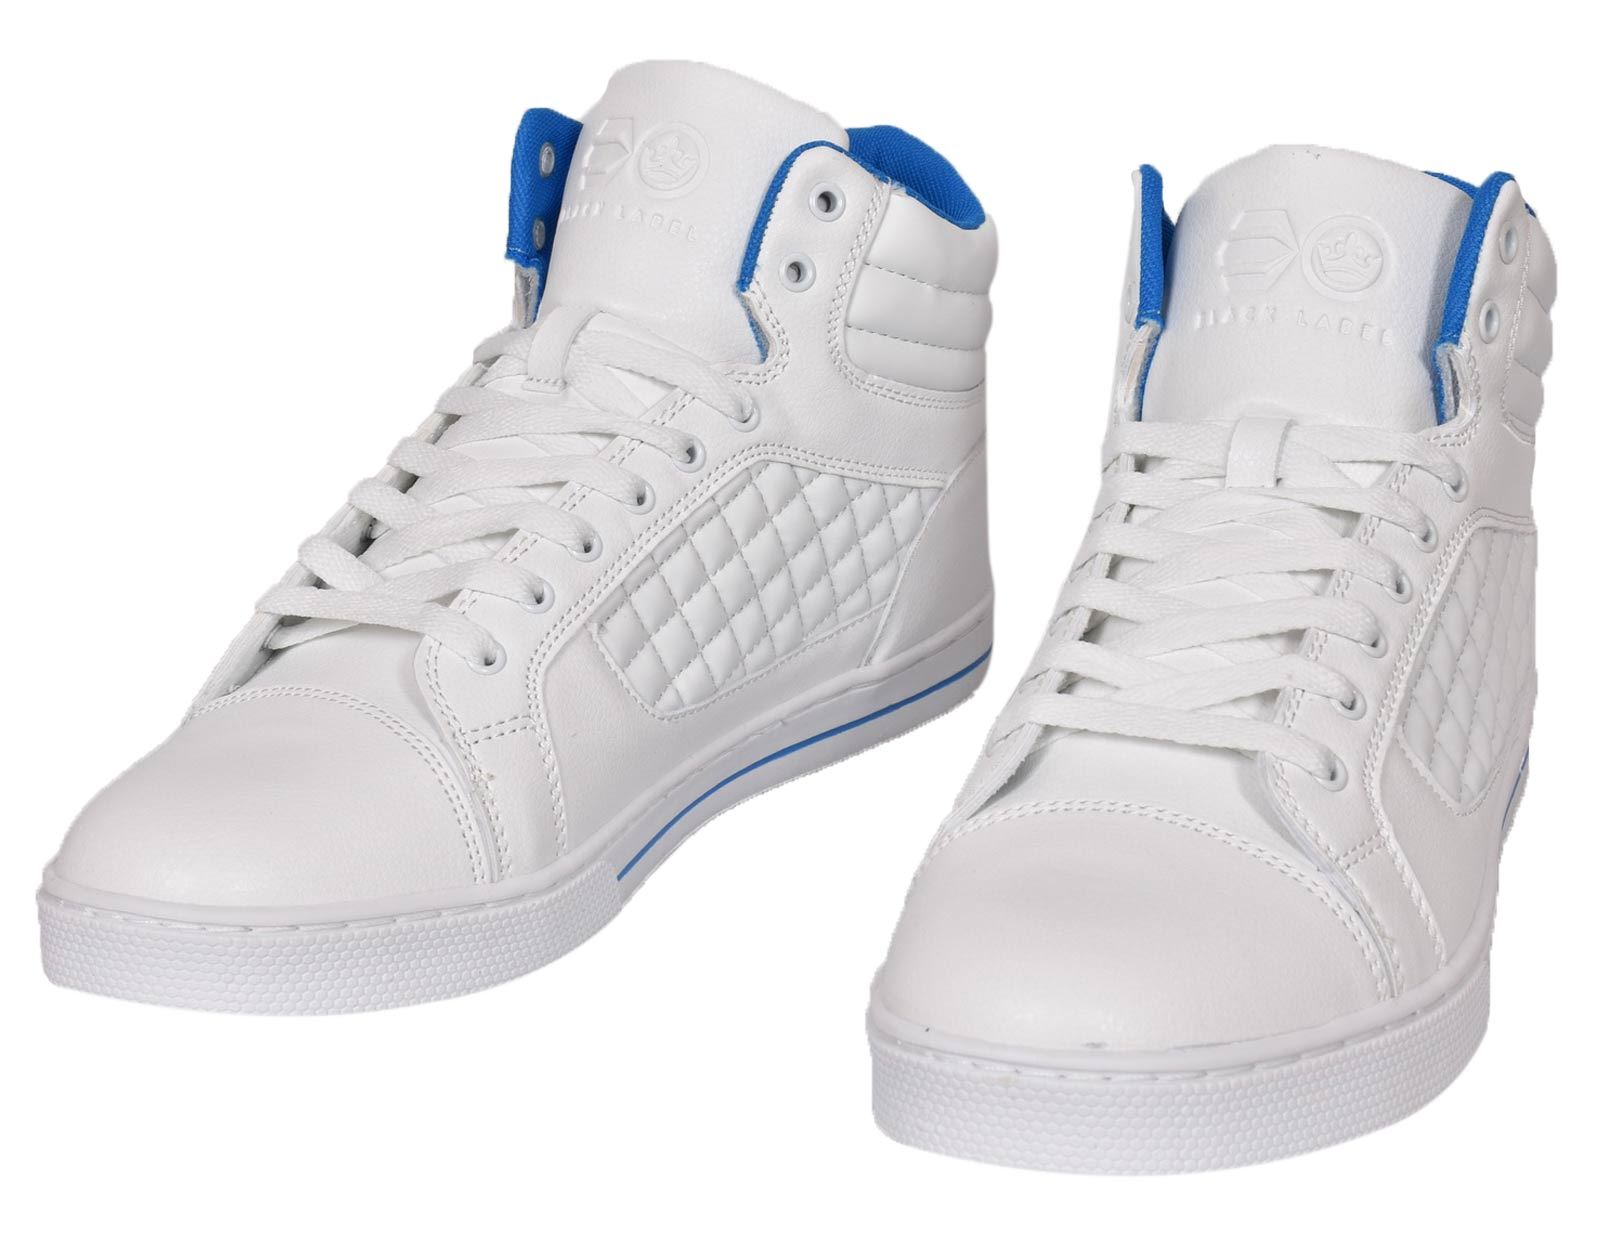 Mens-Trainers-Lace-up-Crosshatch-High-Tops-Ankle-Padded-Shoes-New-UK-Sizes-7-12 thumbnail 19